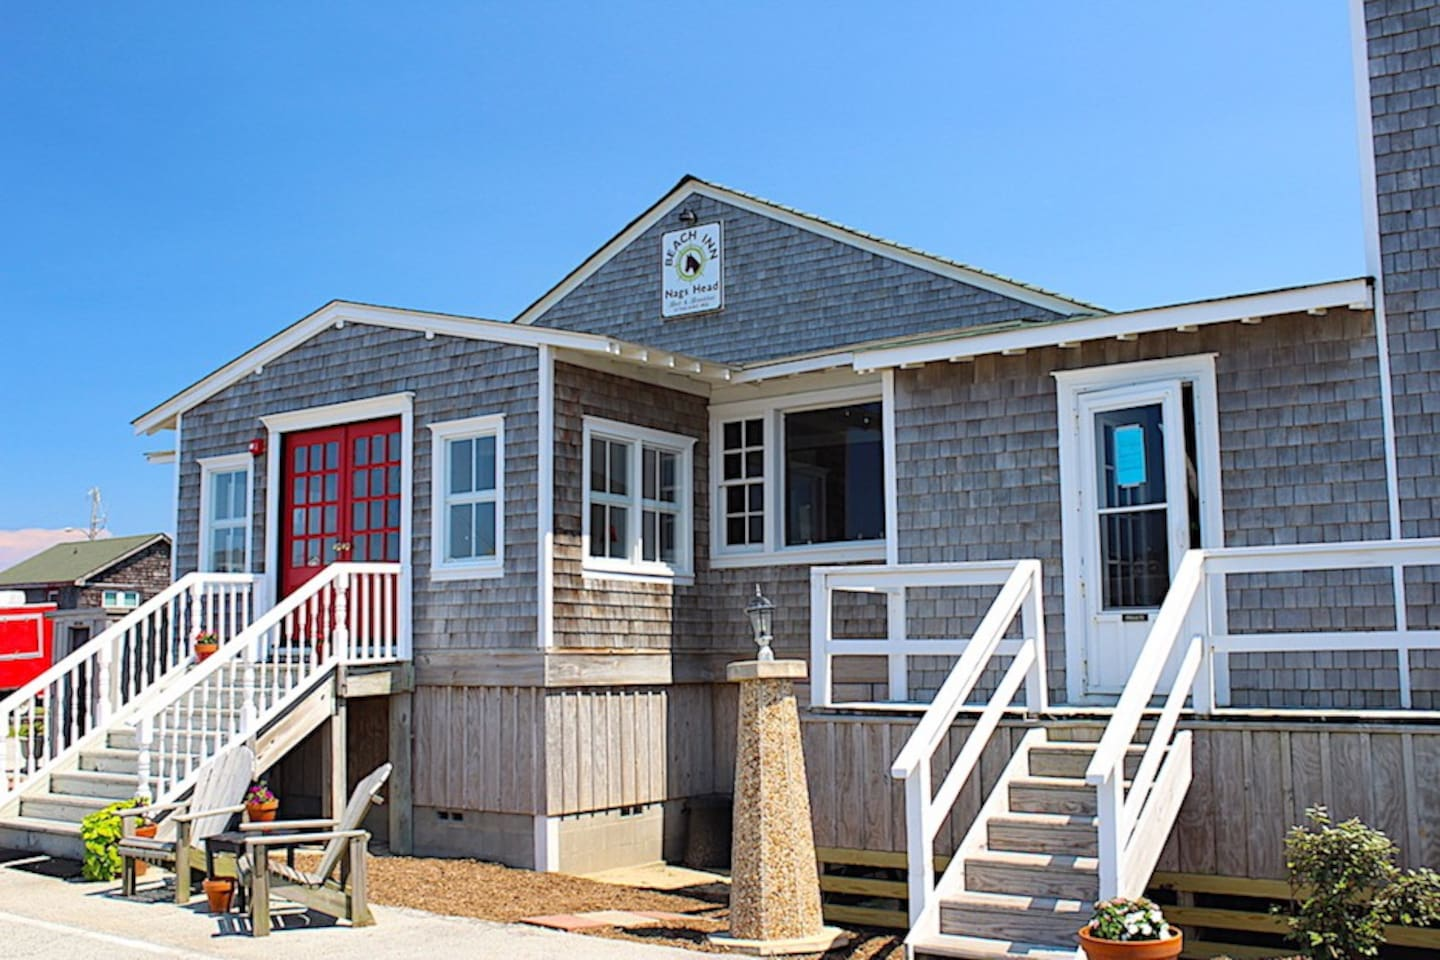 Nags Head Beach Inn Located at 303 E Admiral St